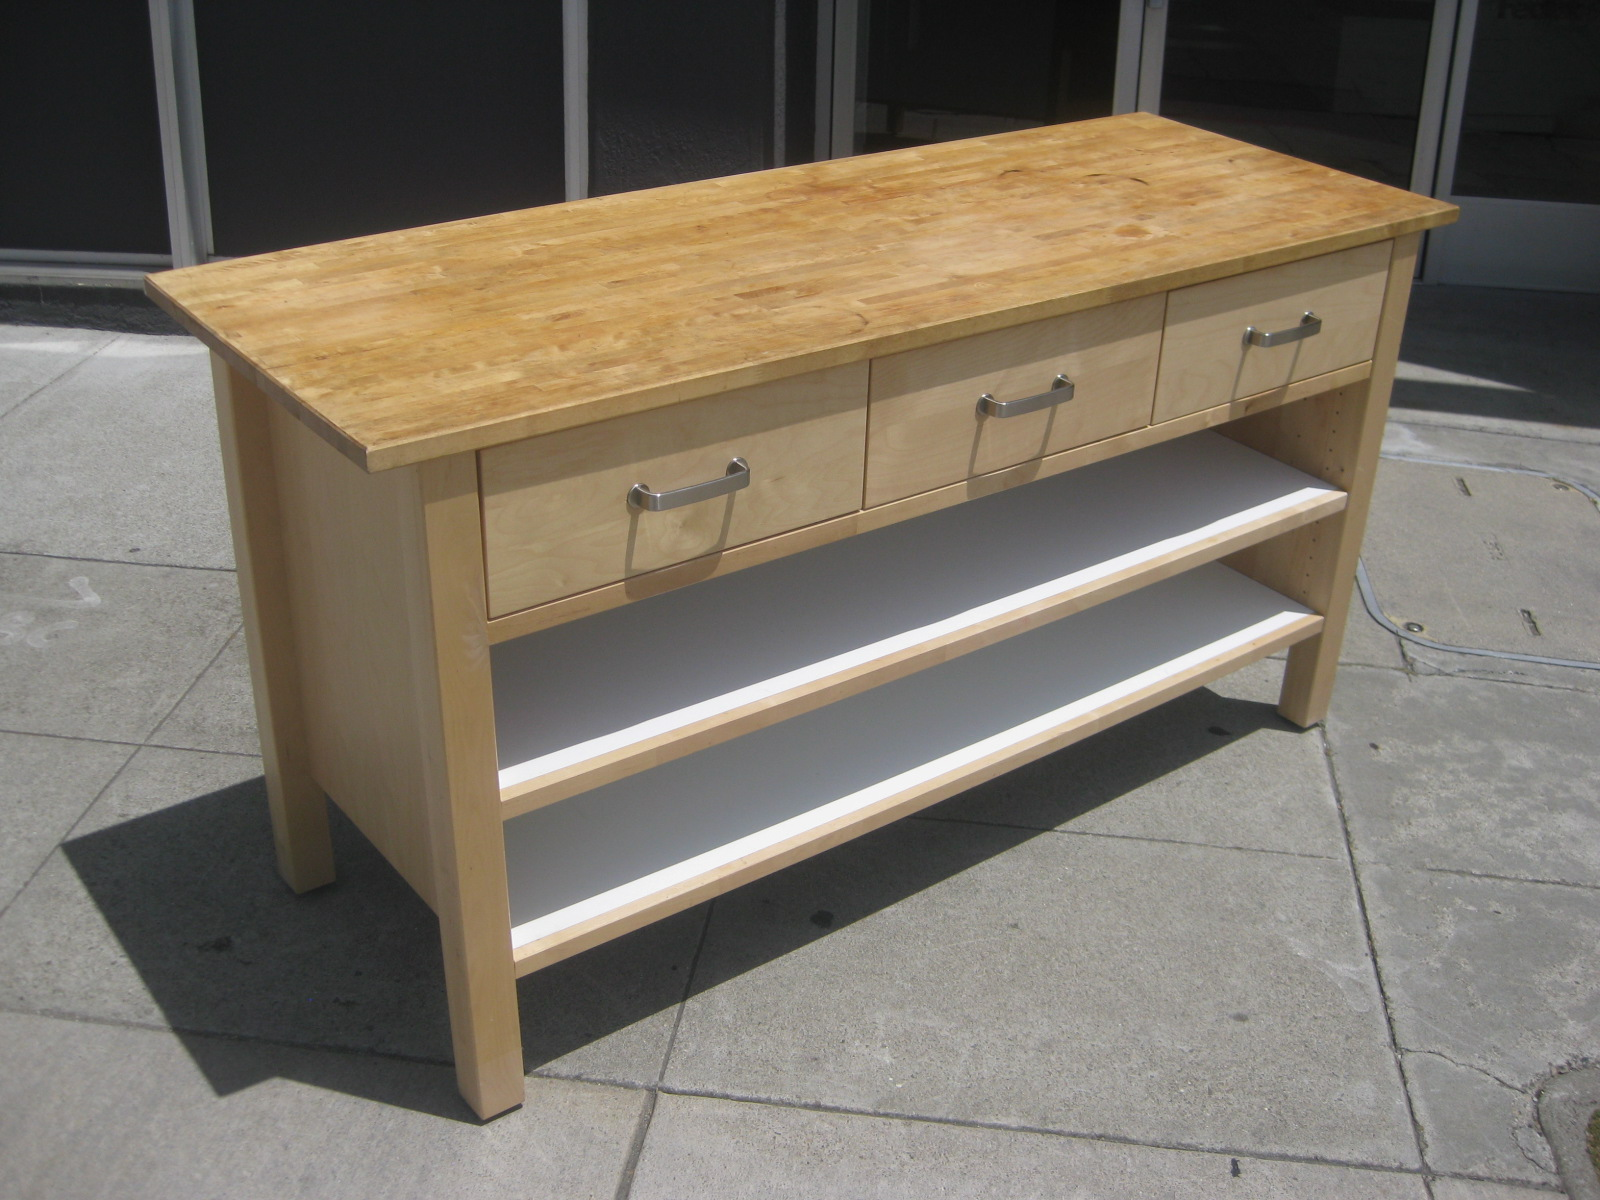 UHURU FURNITURE & COLLECTIBLES: SOLD - Ikea Butcher Block Counter